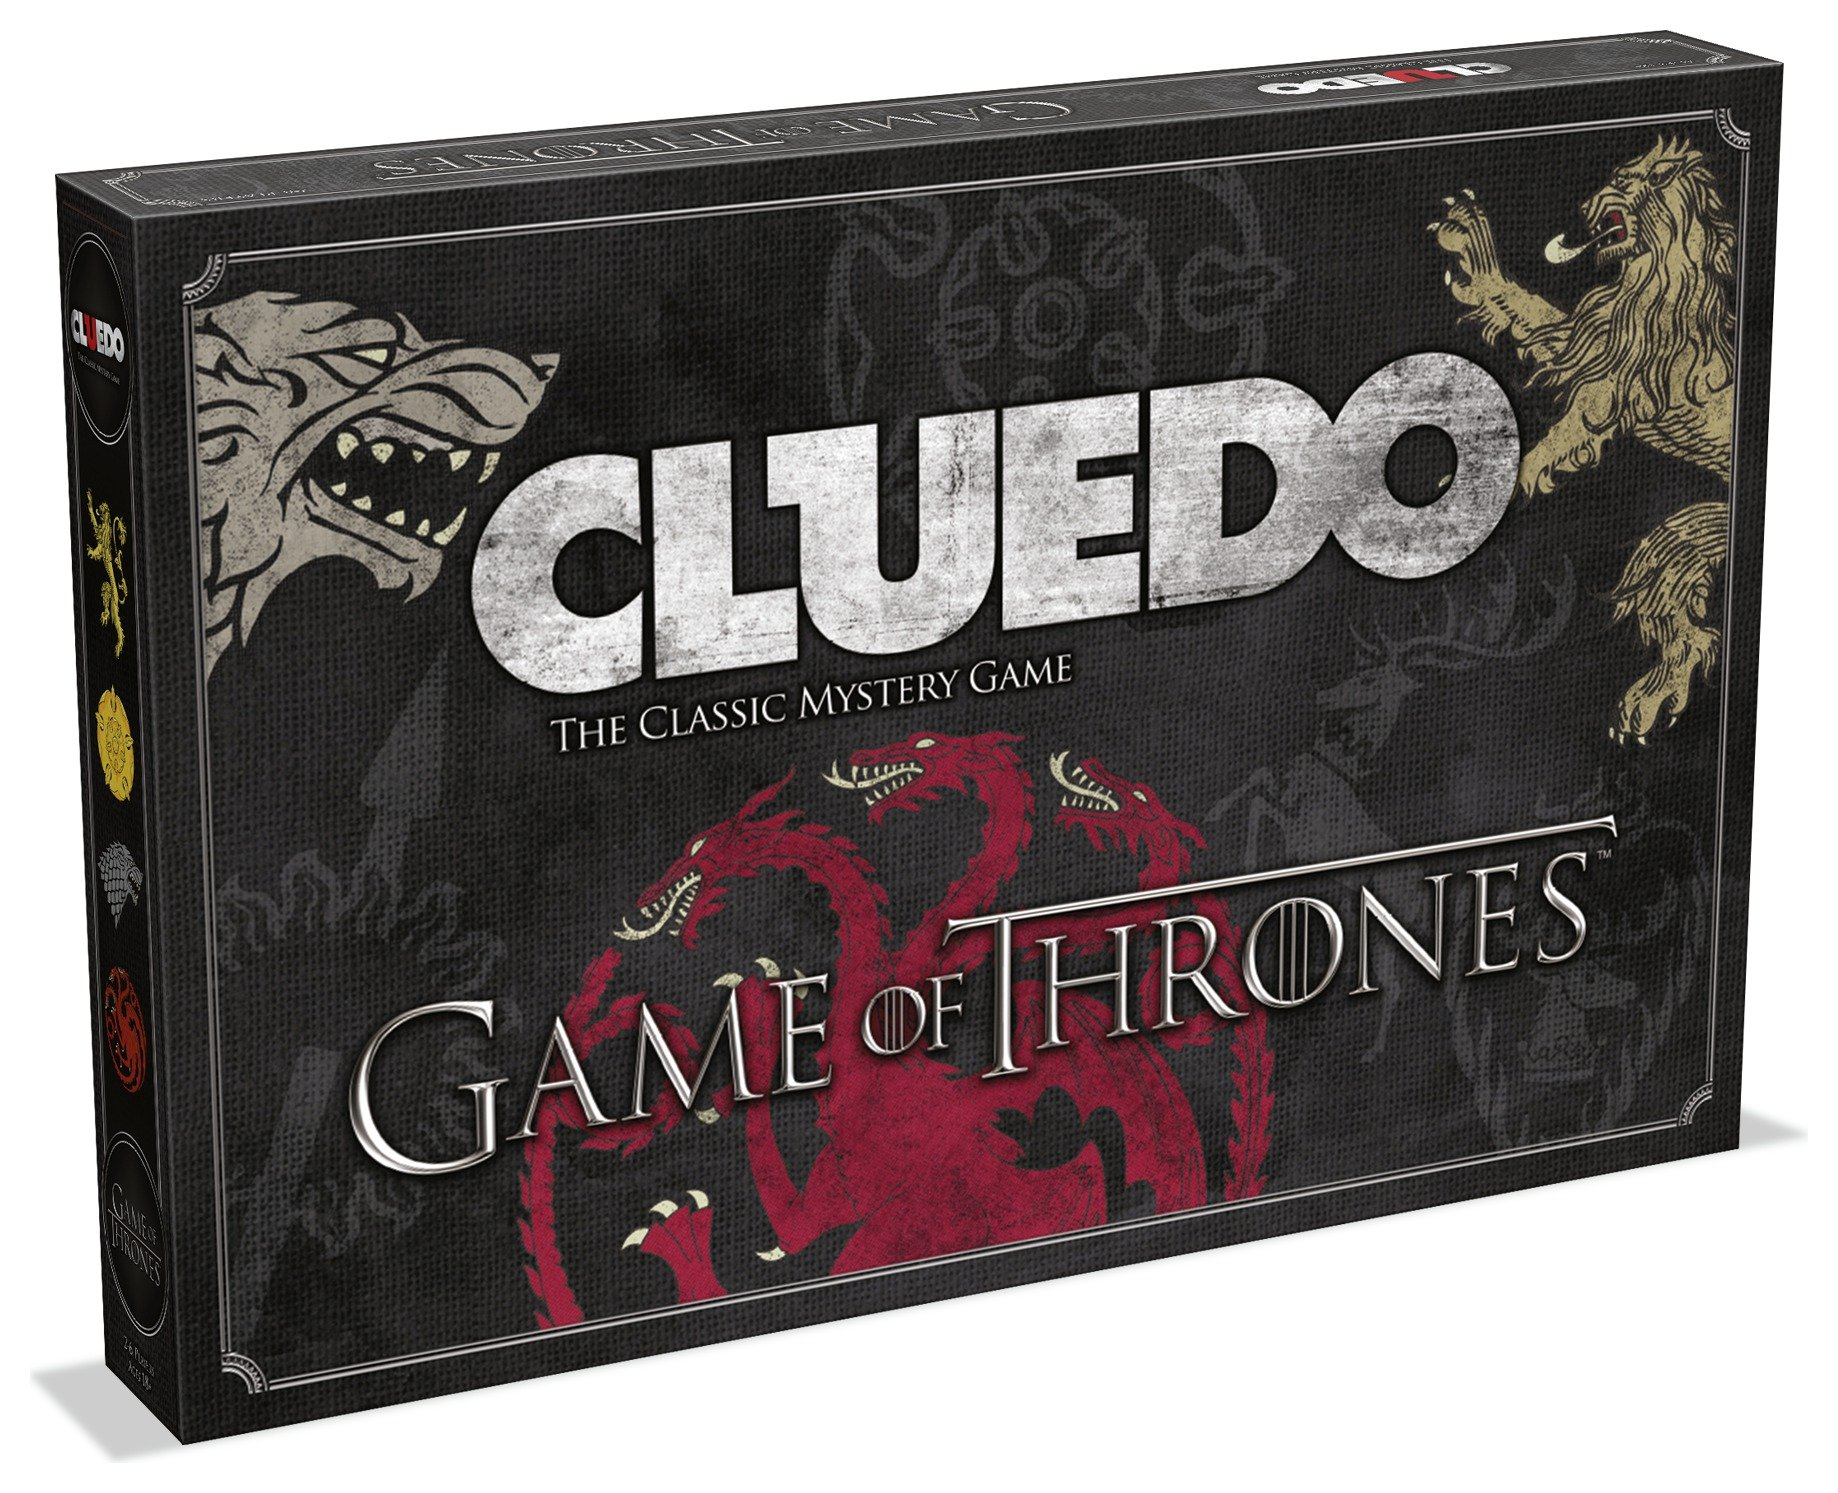 Image of Cluedo Game of Thrones Mystery Board Game